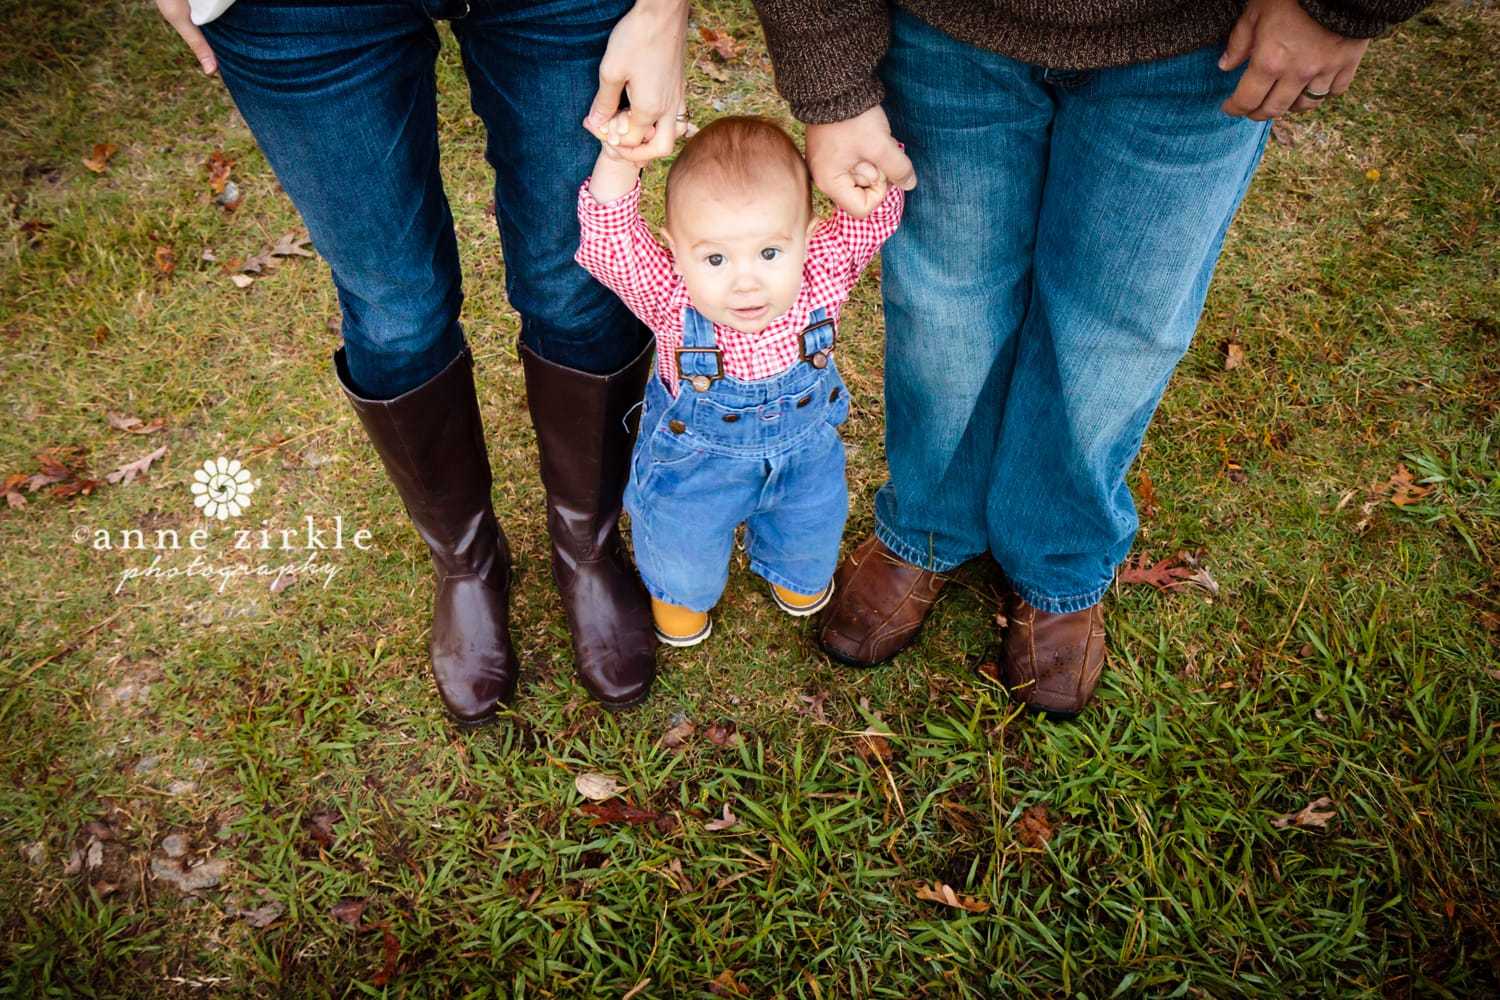 baby-boy-standing-between-parents